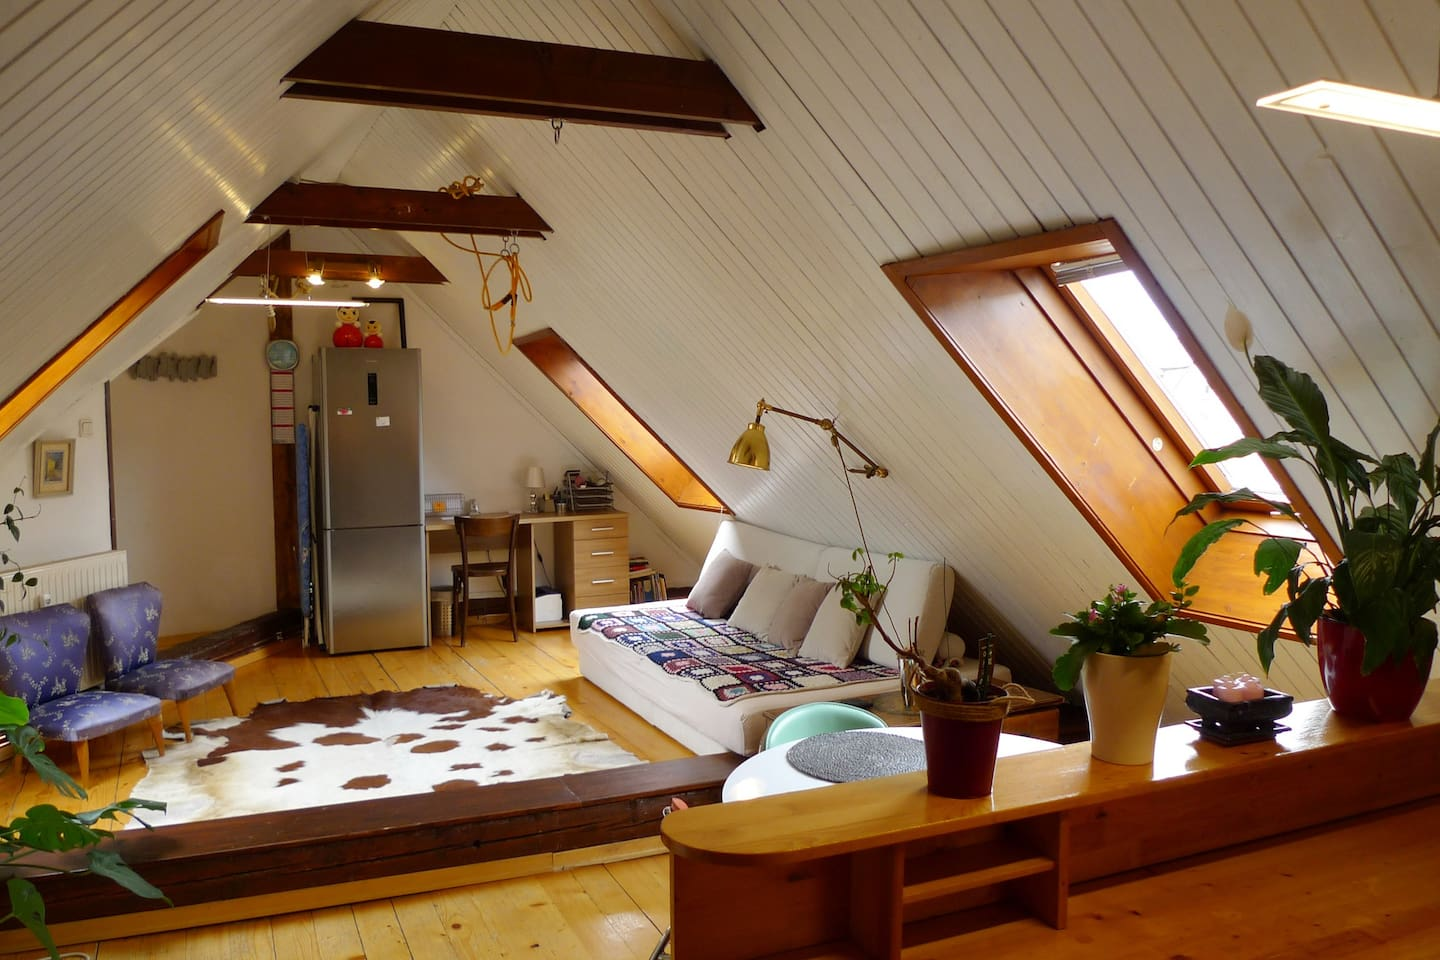 Sitting room like in a traditional mountain hut, but in the heart of Ljubljana! There is a swing and a climbing rope to add to your kid's fun.